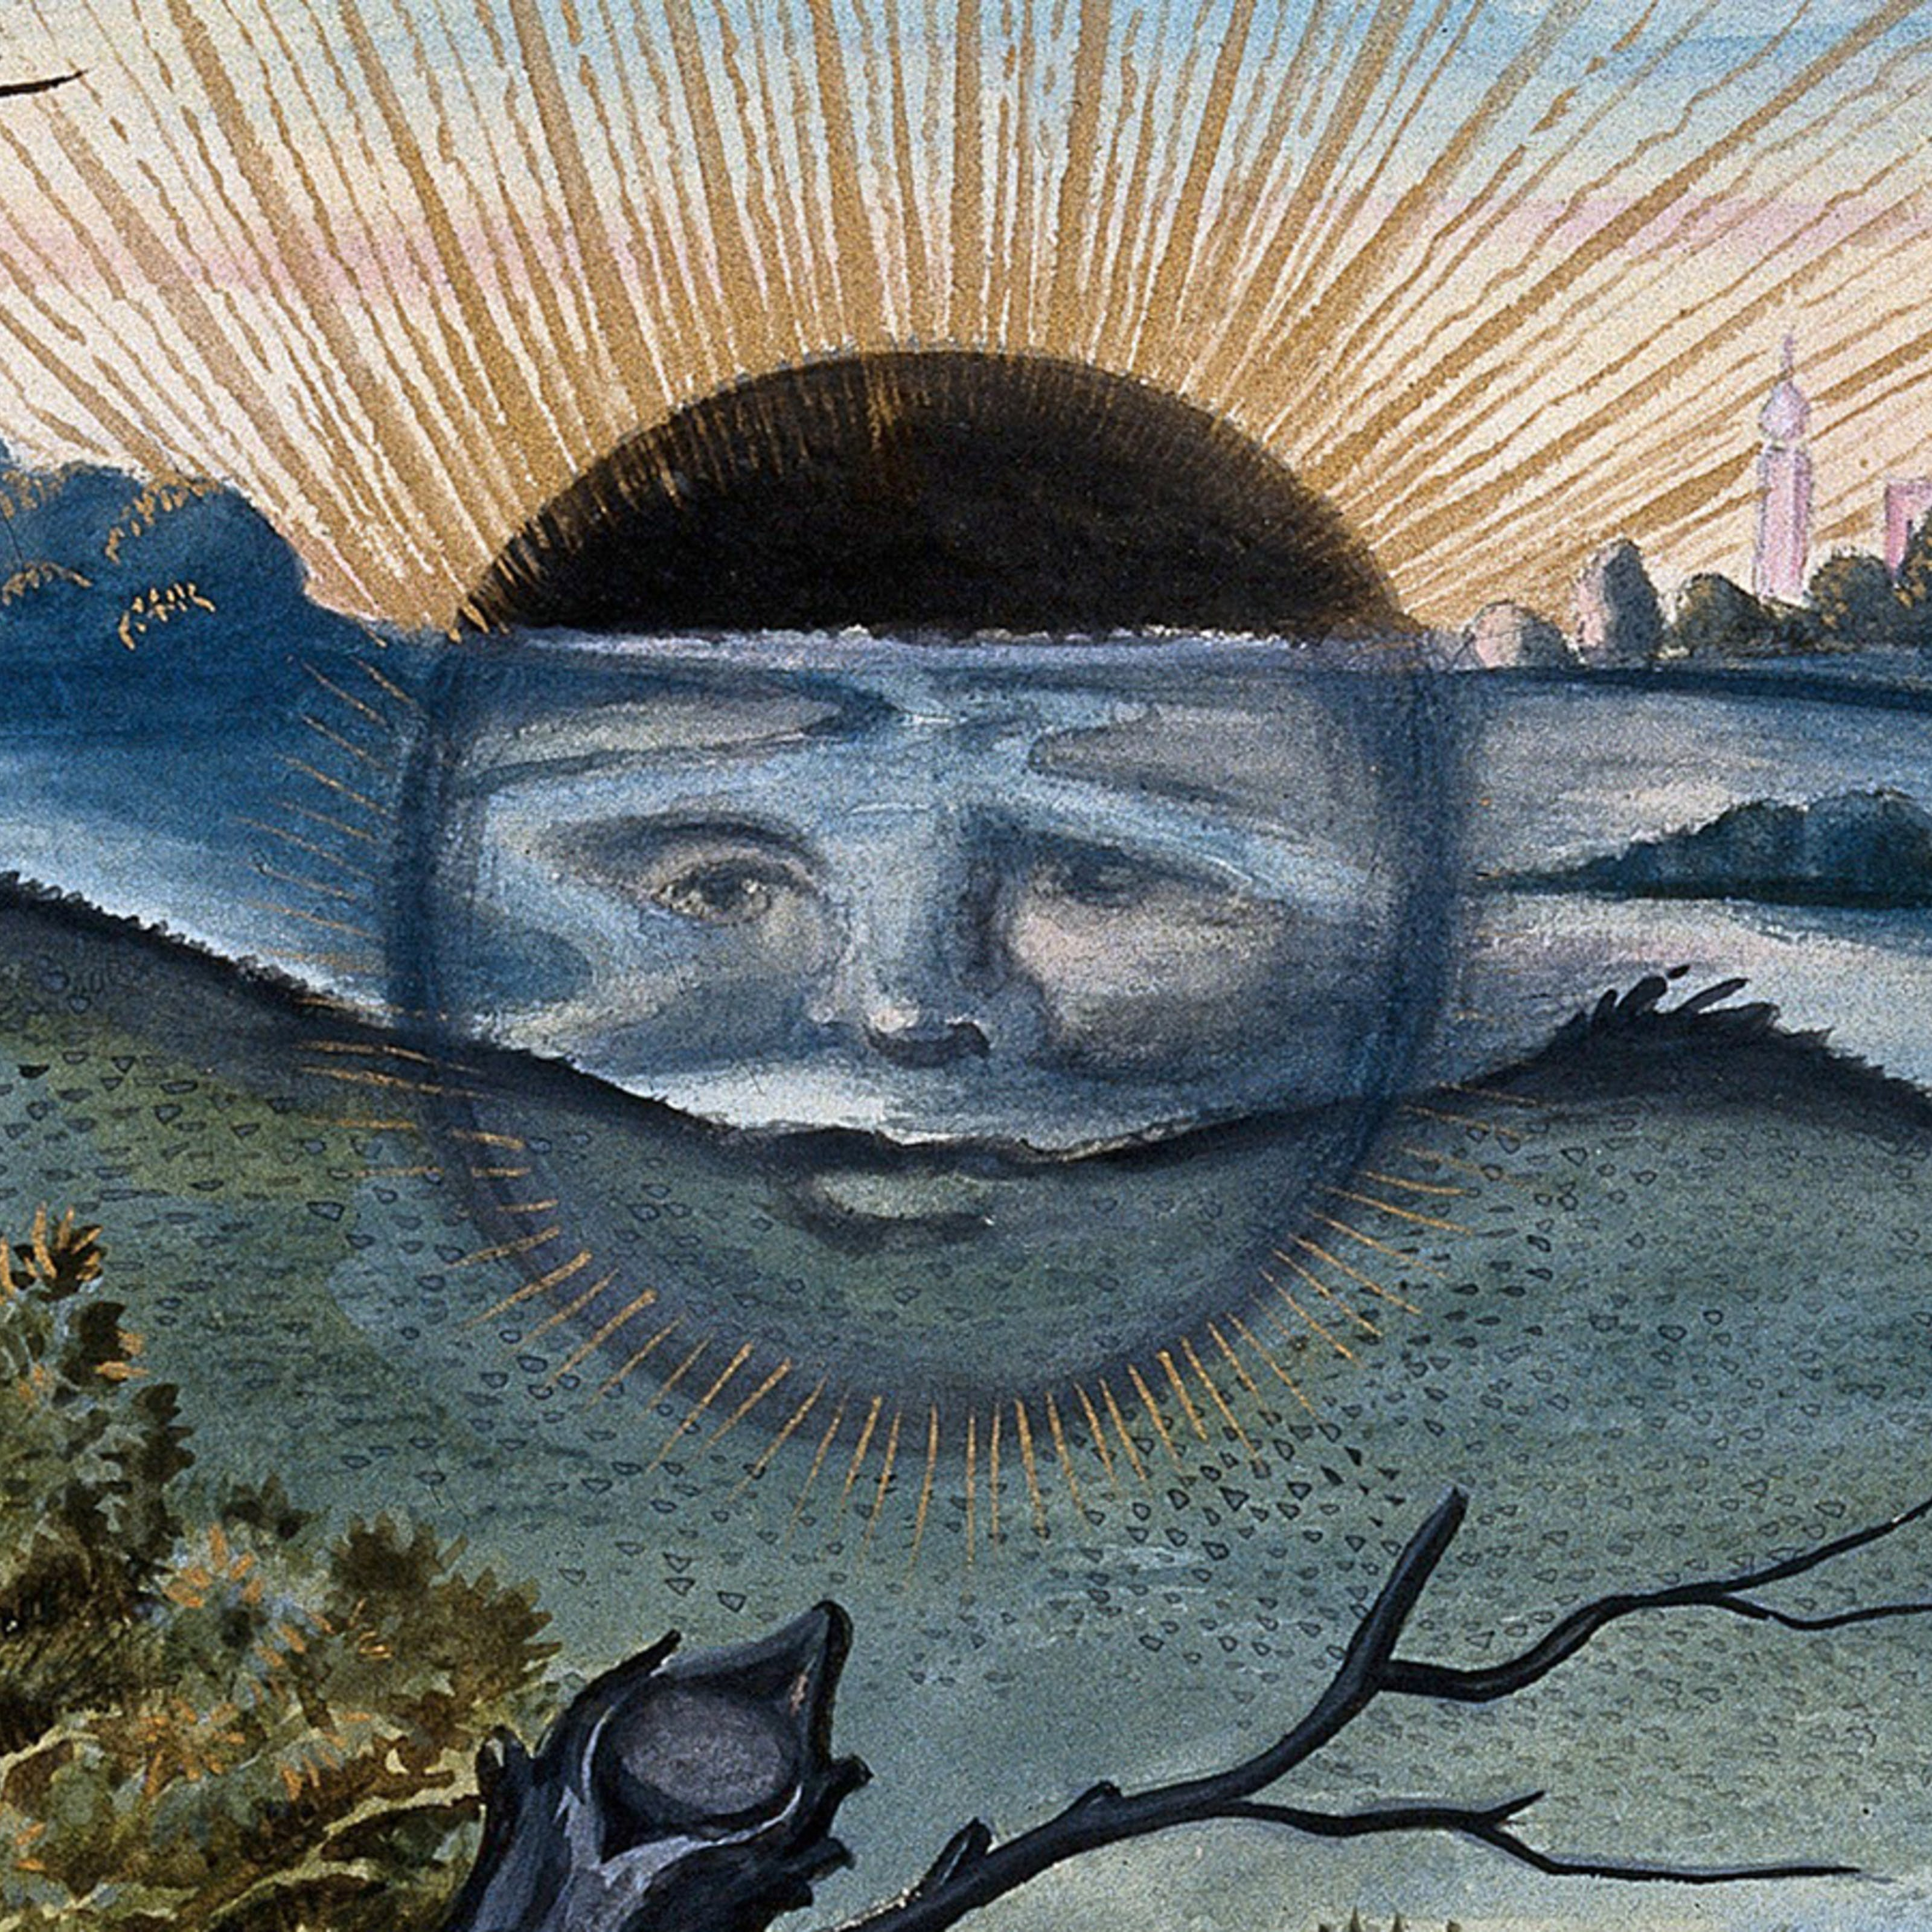 A black sun with a face descends behind the horizon of a marshy landscape